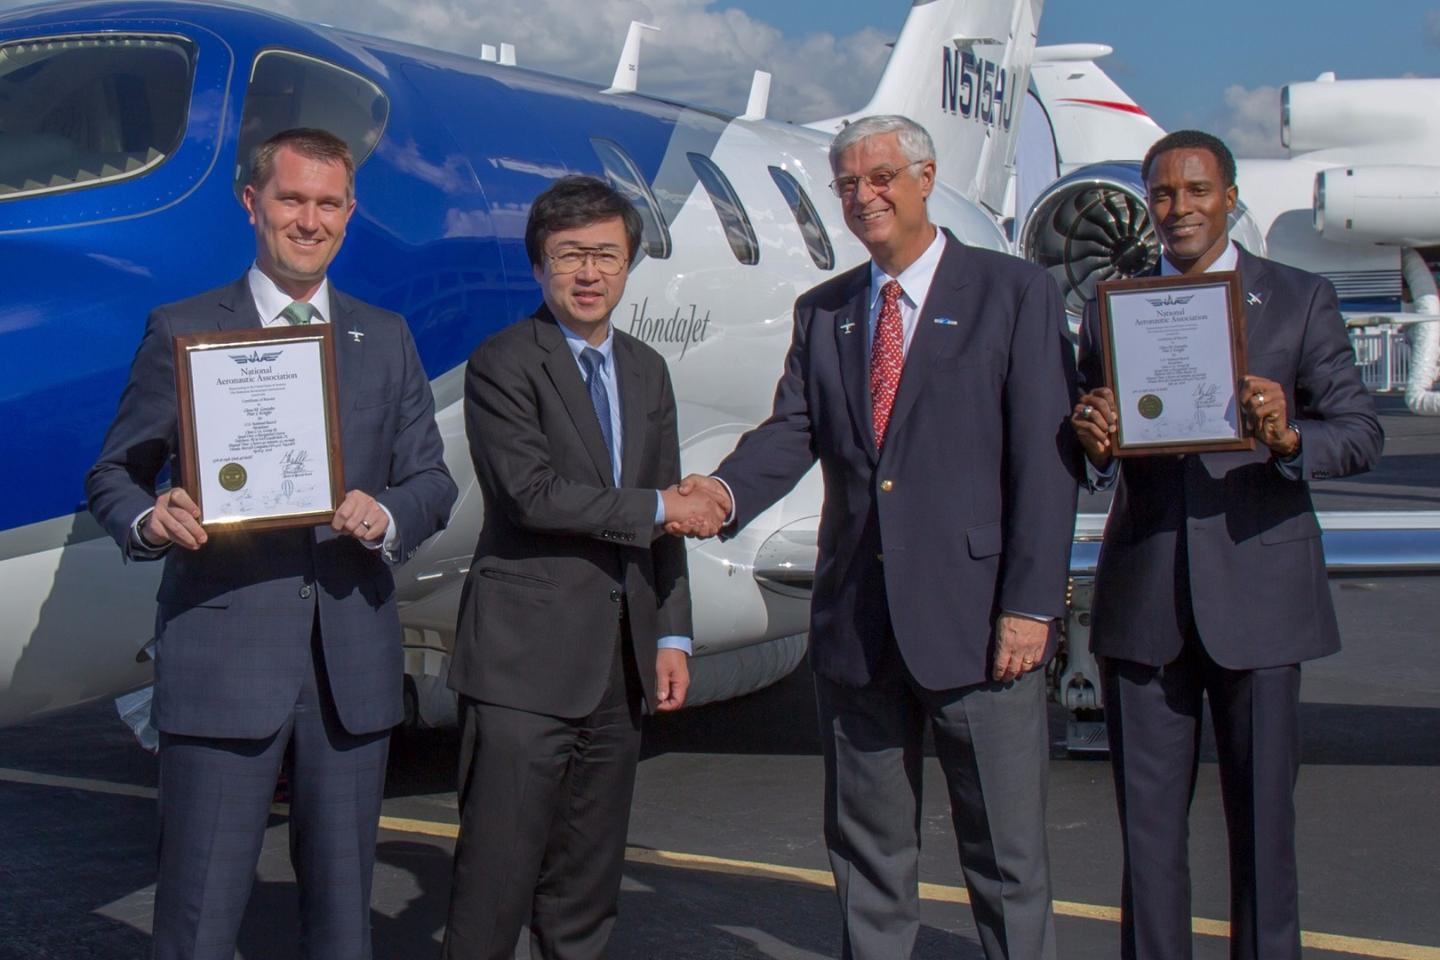 Honda claims that the HondaJet is theworld's most advanced light jet, by virtue of features like over-the-wing engines and lightweight composite fuselage